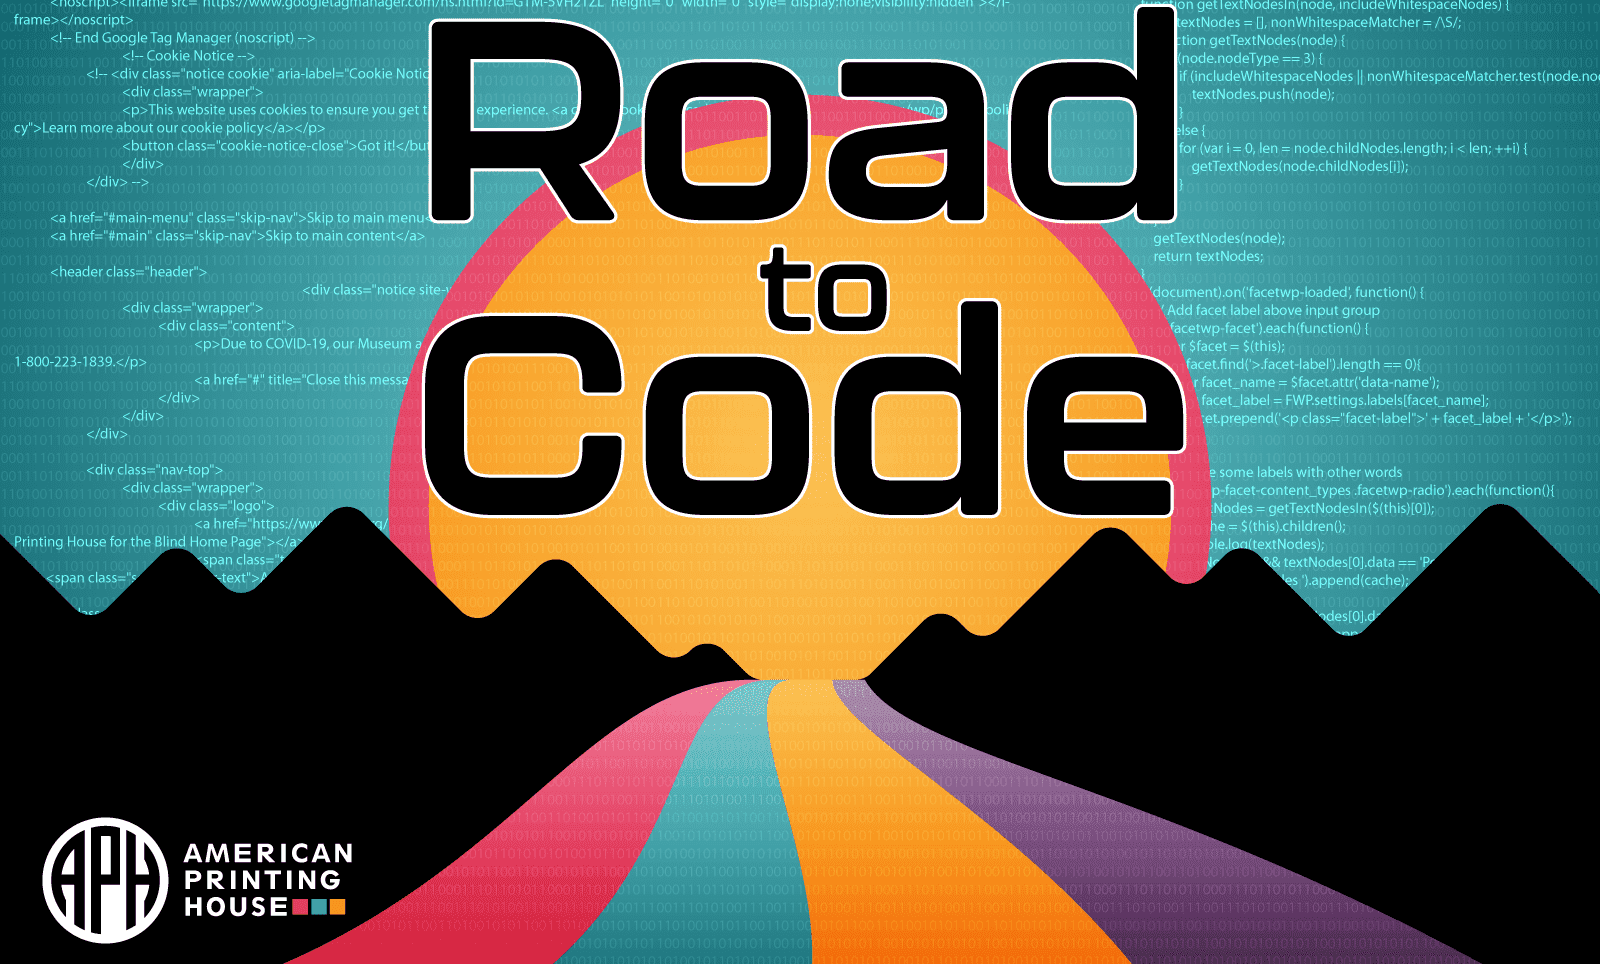 """a graphic that says """"Road to Code"""" showing a winding road in our branding colors toward a sunset and at the horizon. The sky giving a star effect made of coding symbols."""